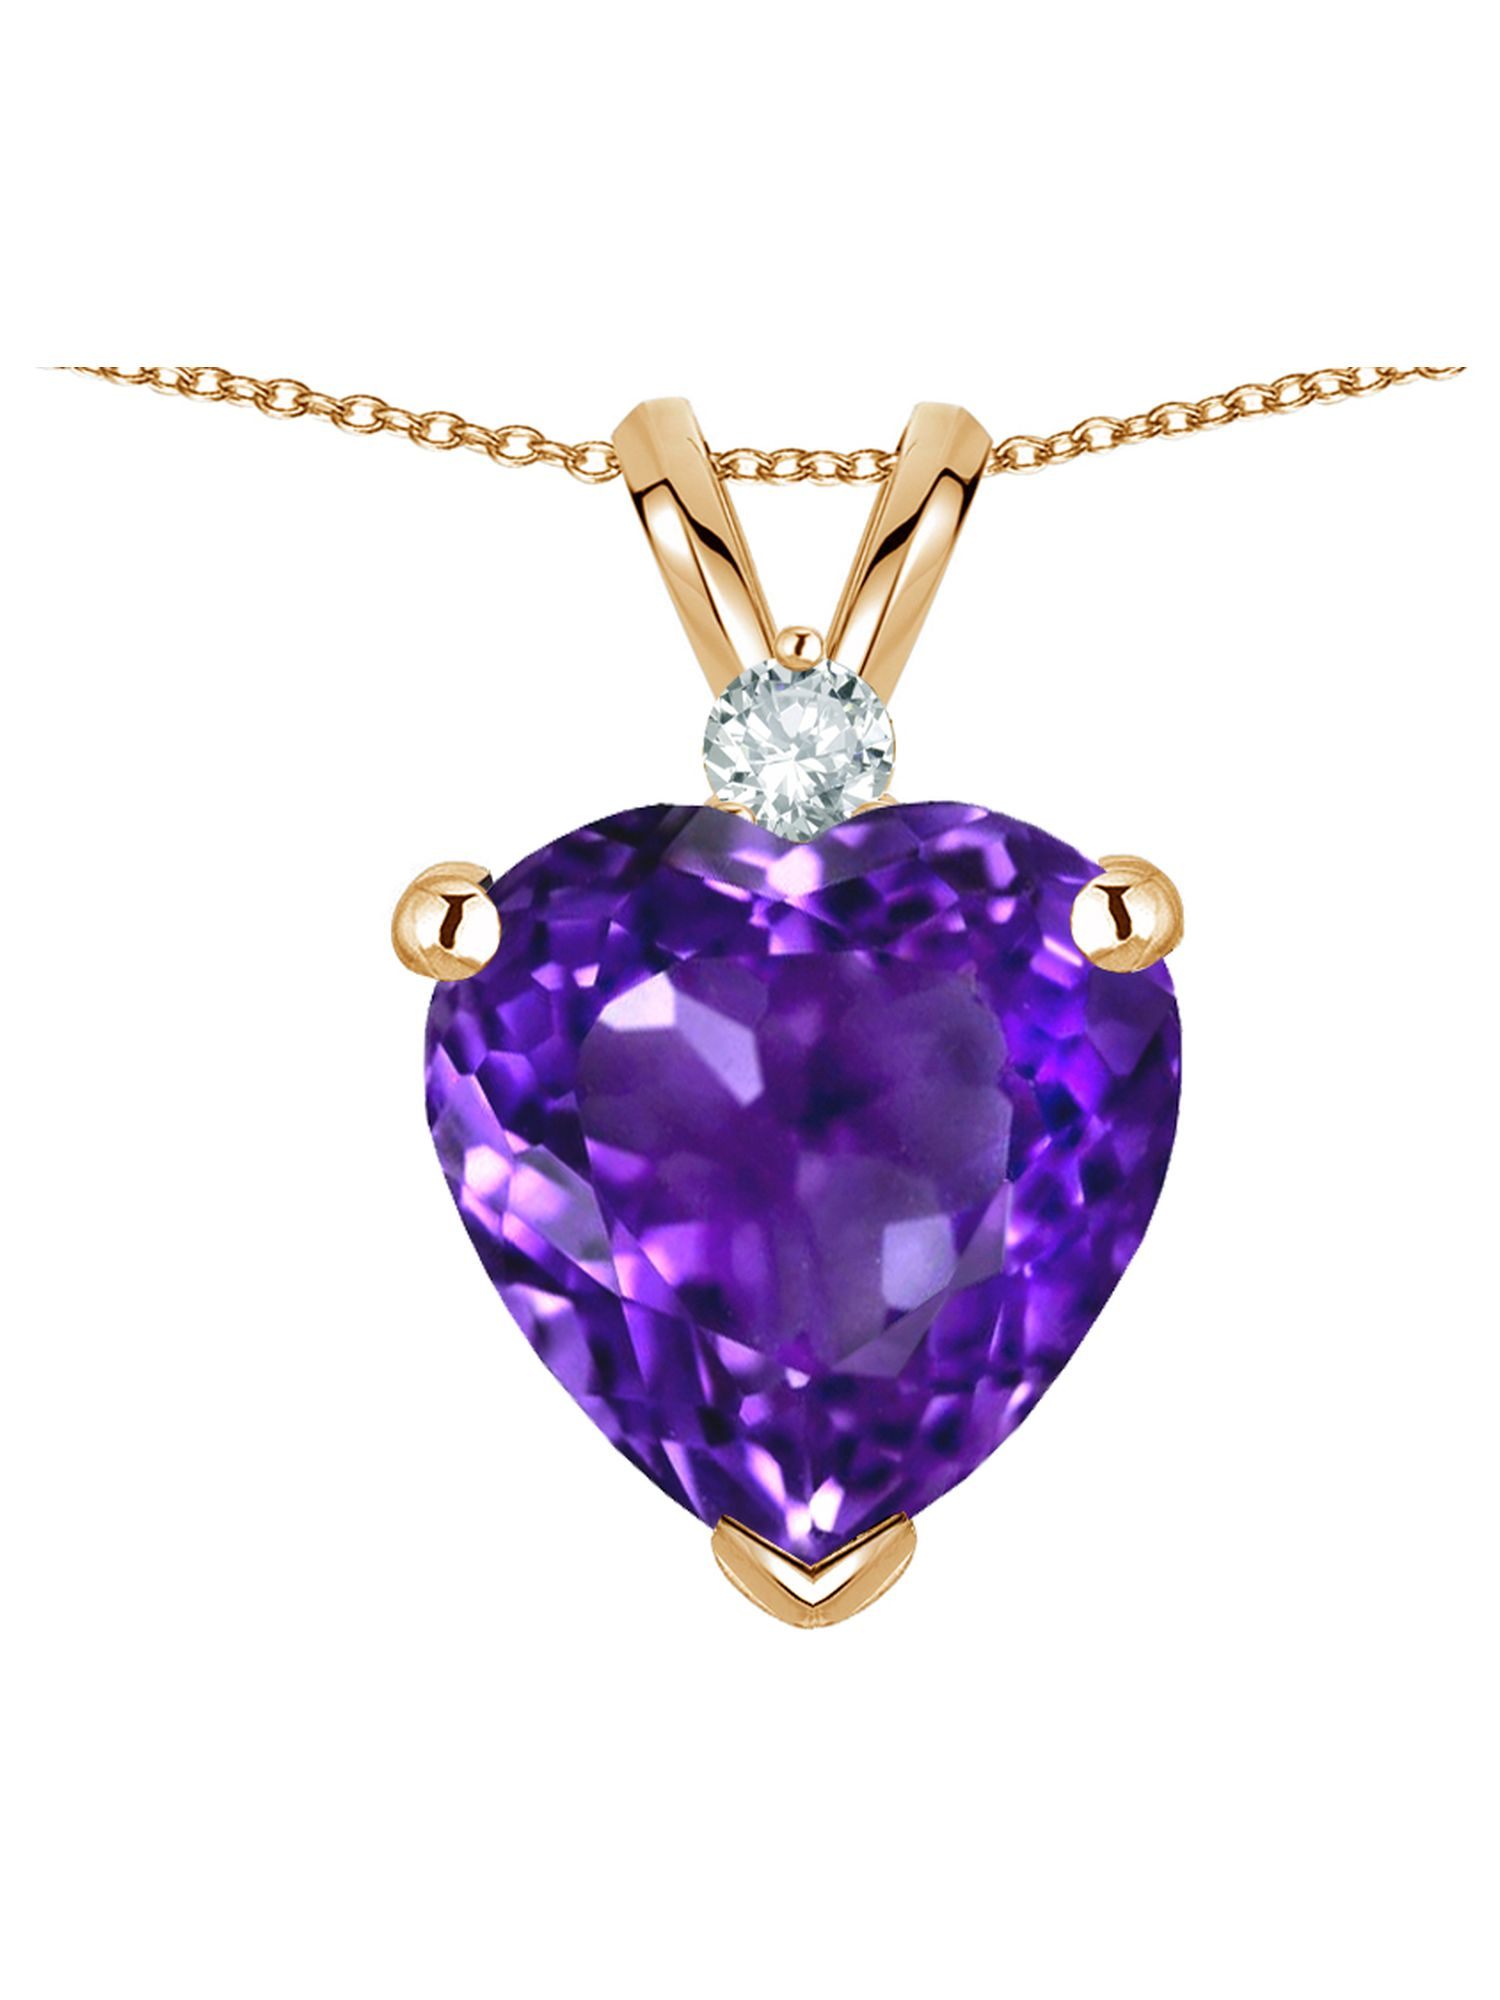 Star K 8mm Genuine Amethyst Heart Pendant Necklace in 14 kt Yellow Gold by